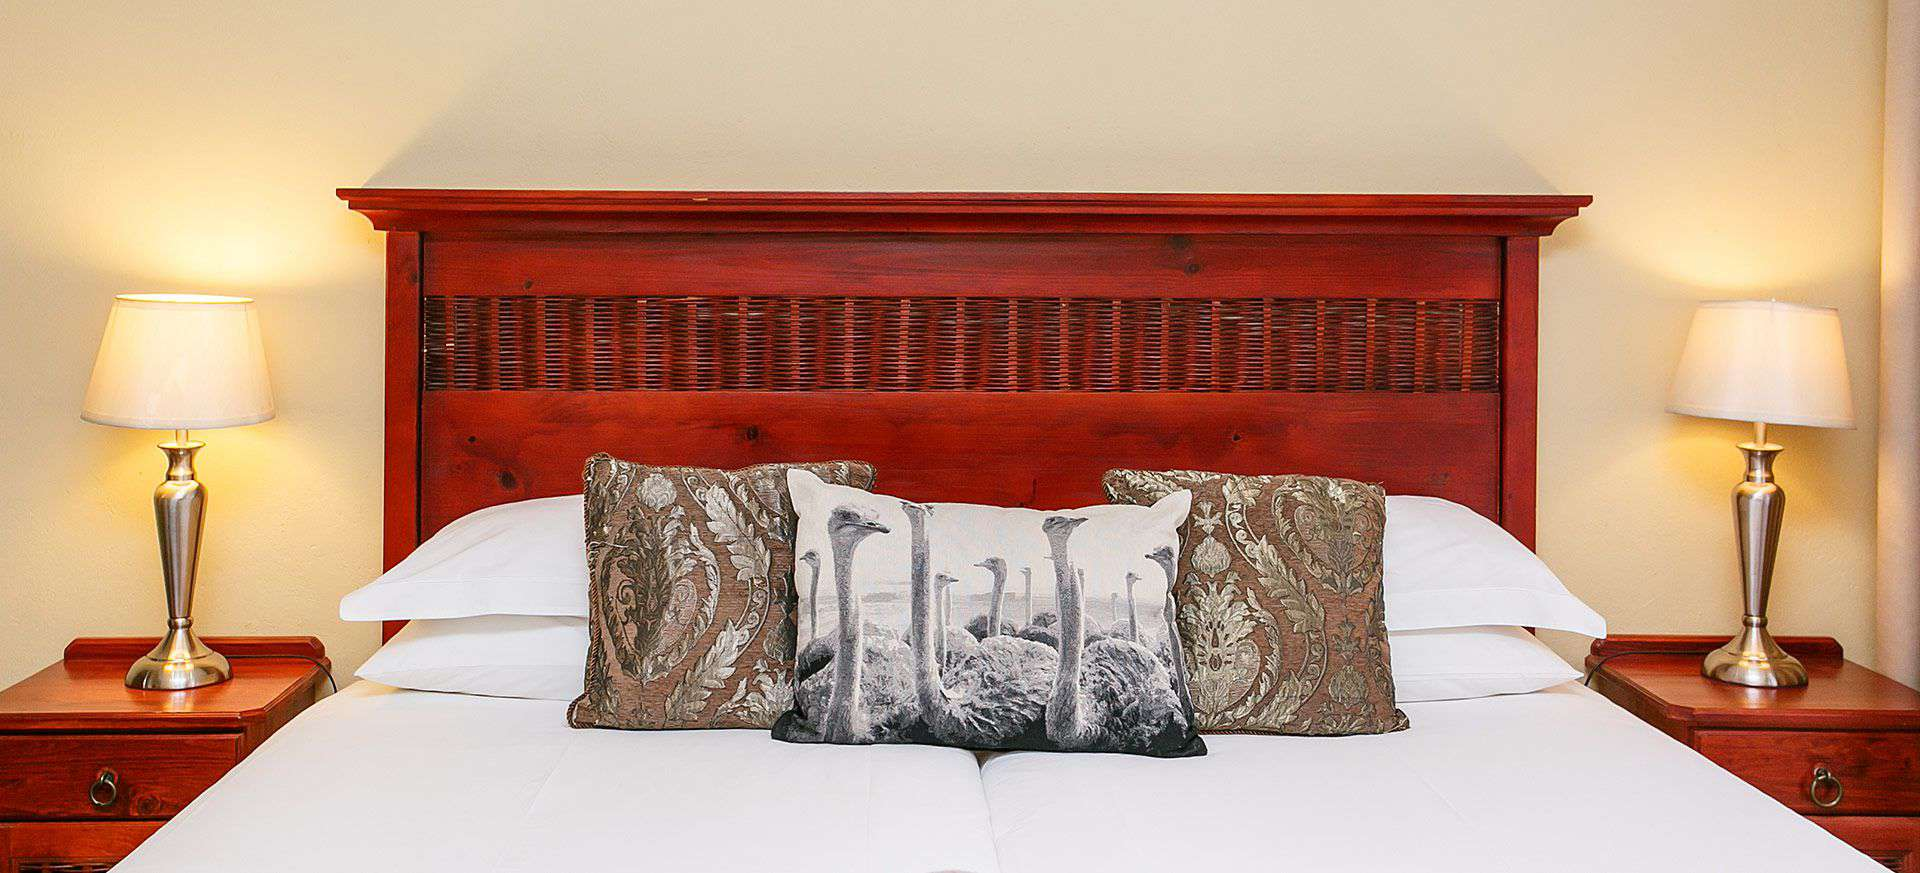 Gumtree Guest House bedroom